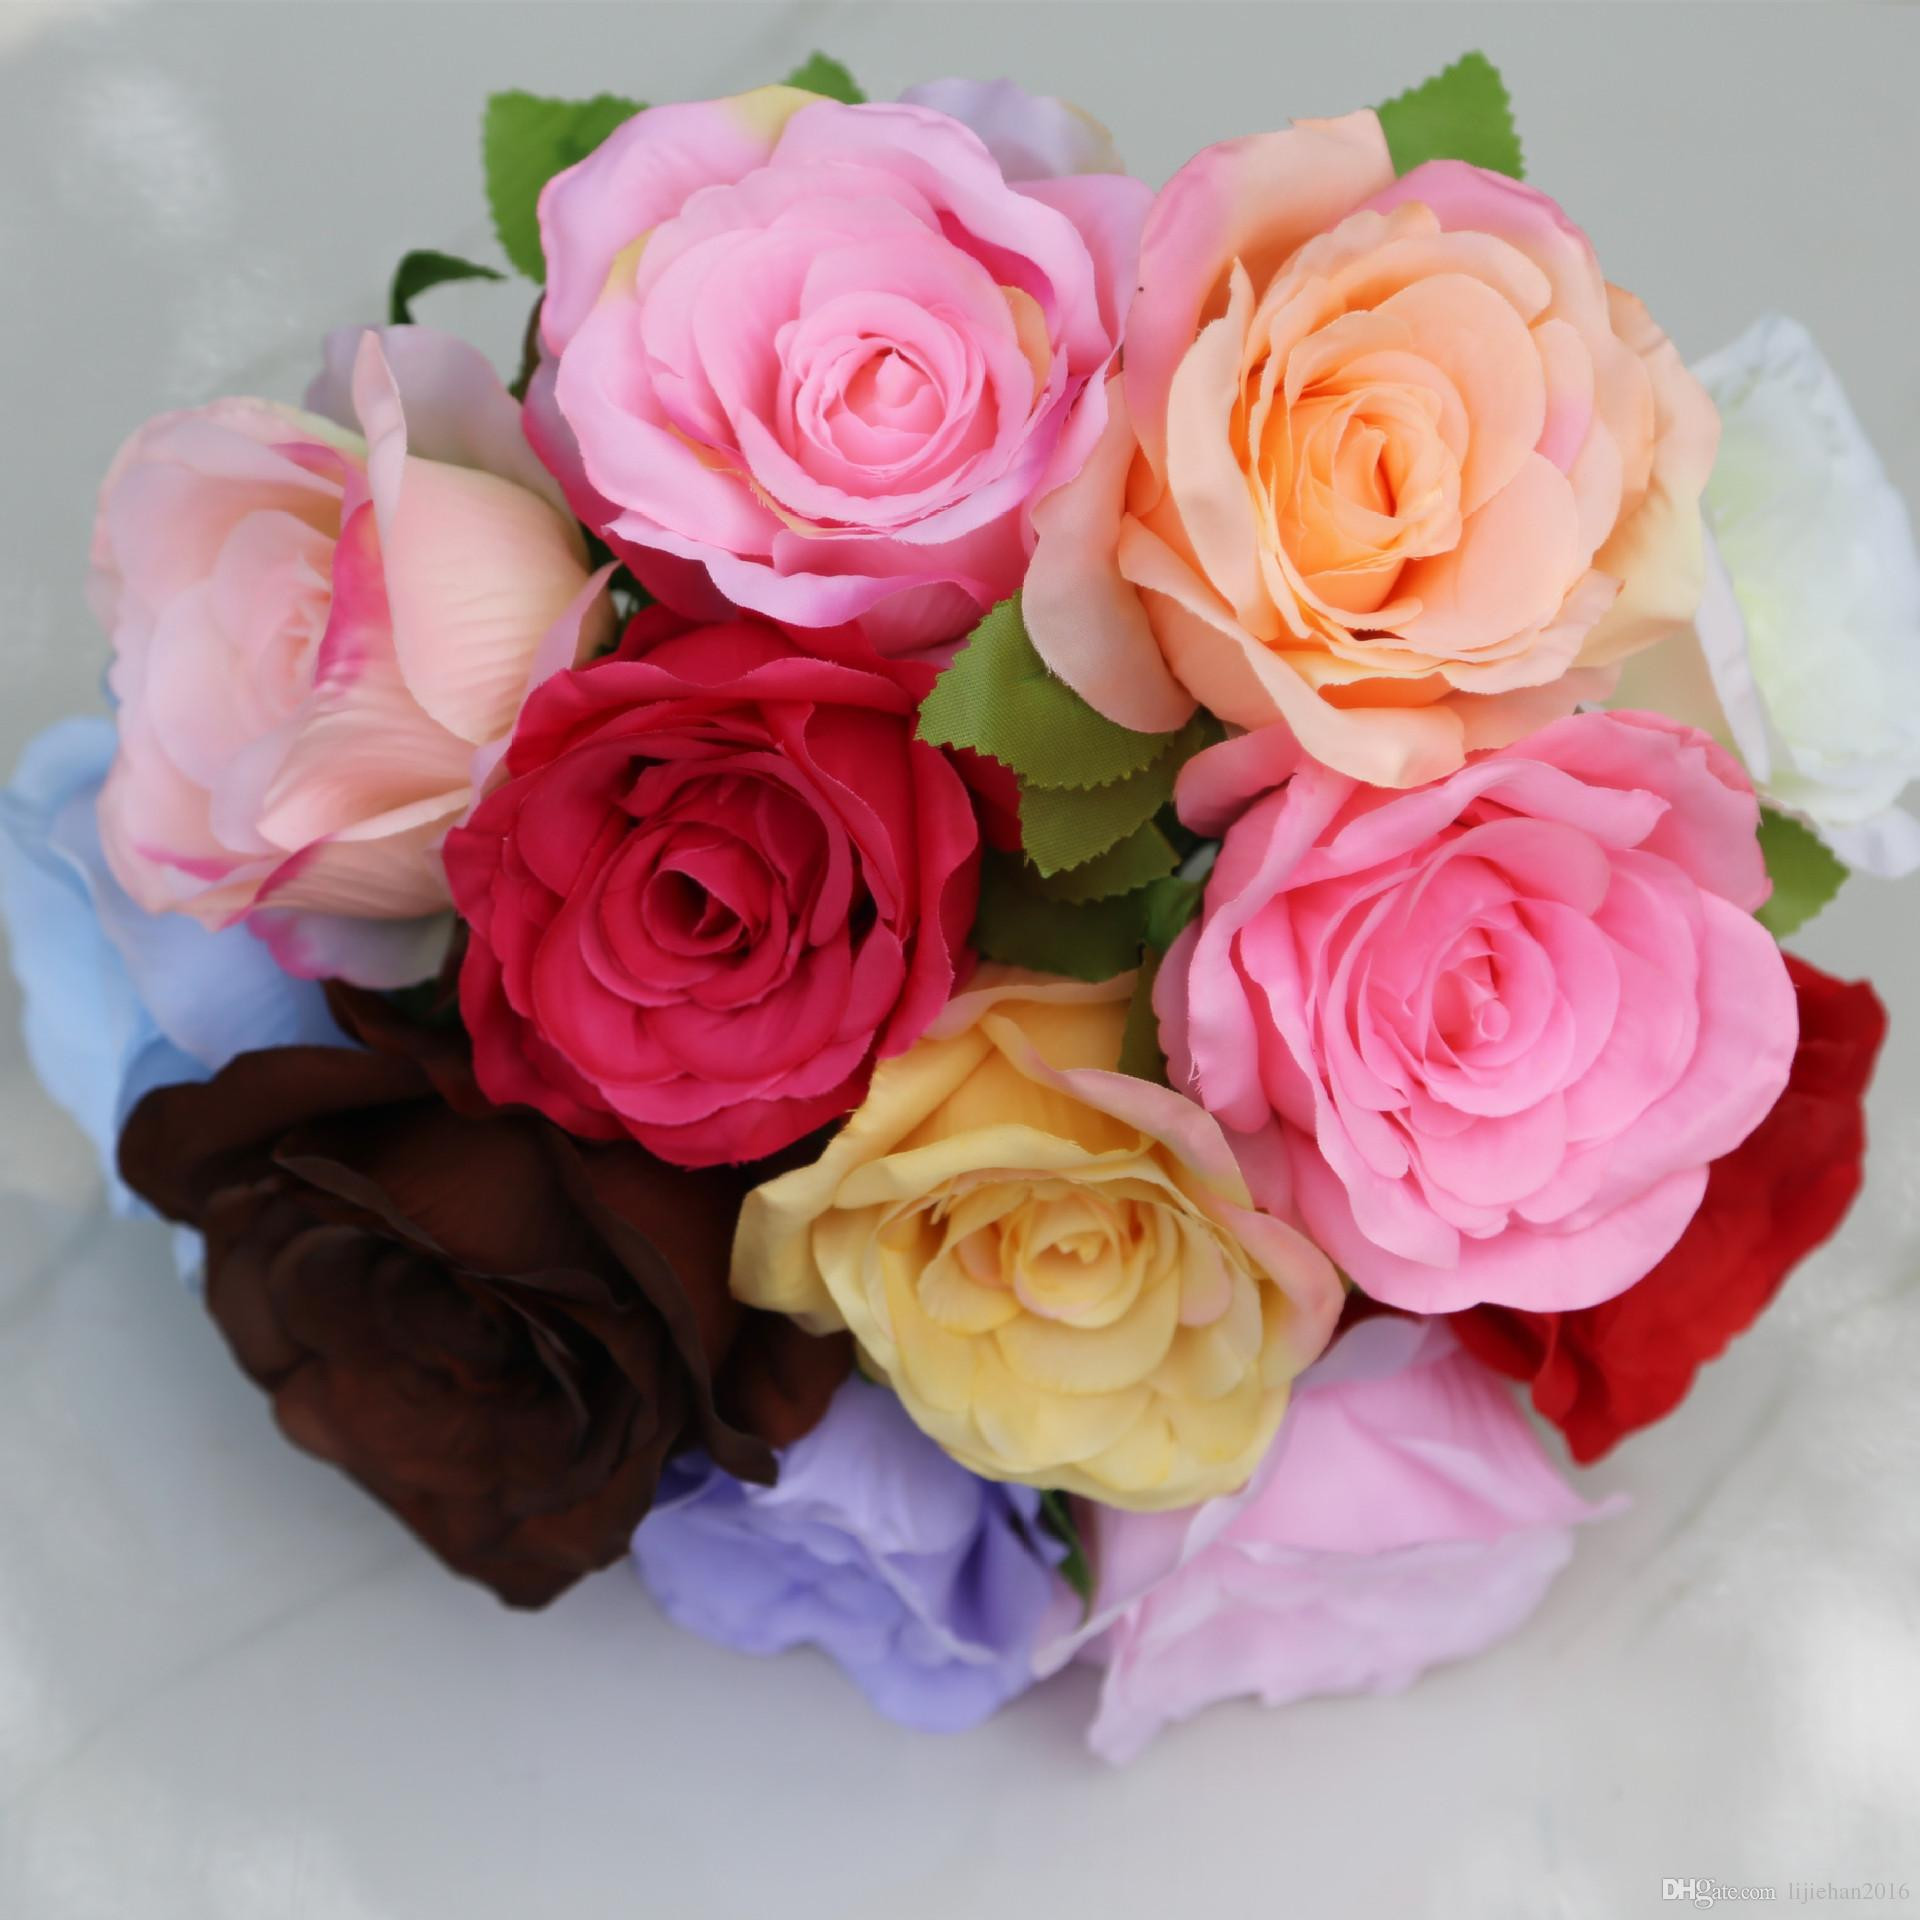 Best Artificial Flowers Silk Roses Bouquet Home Wedding Decoration Pack 24 Colour Select Hb 032 Under $0 51